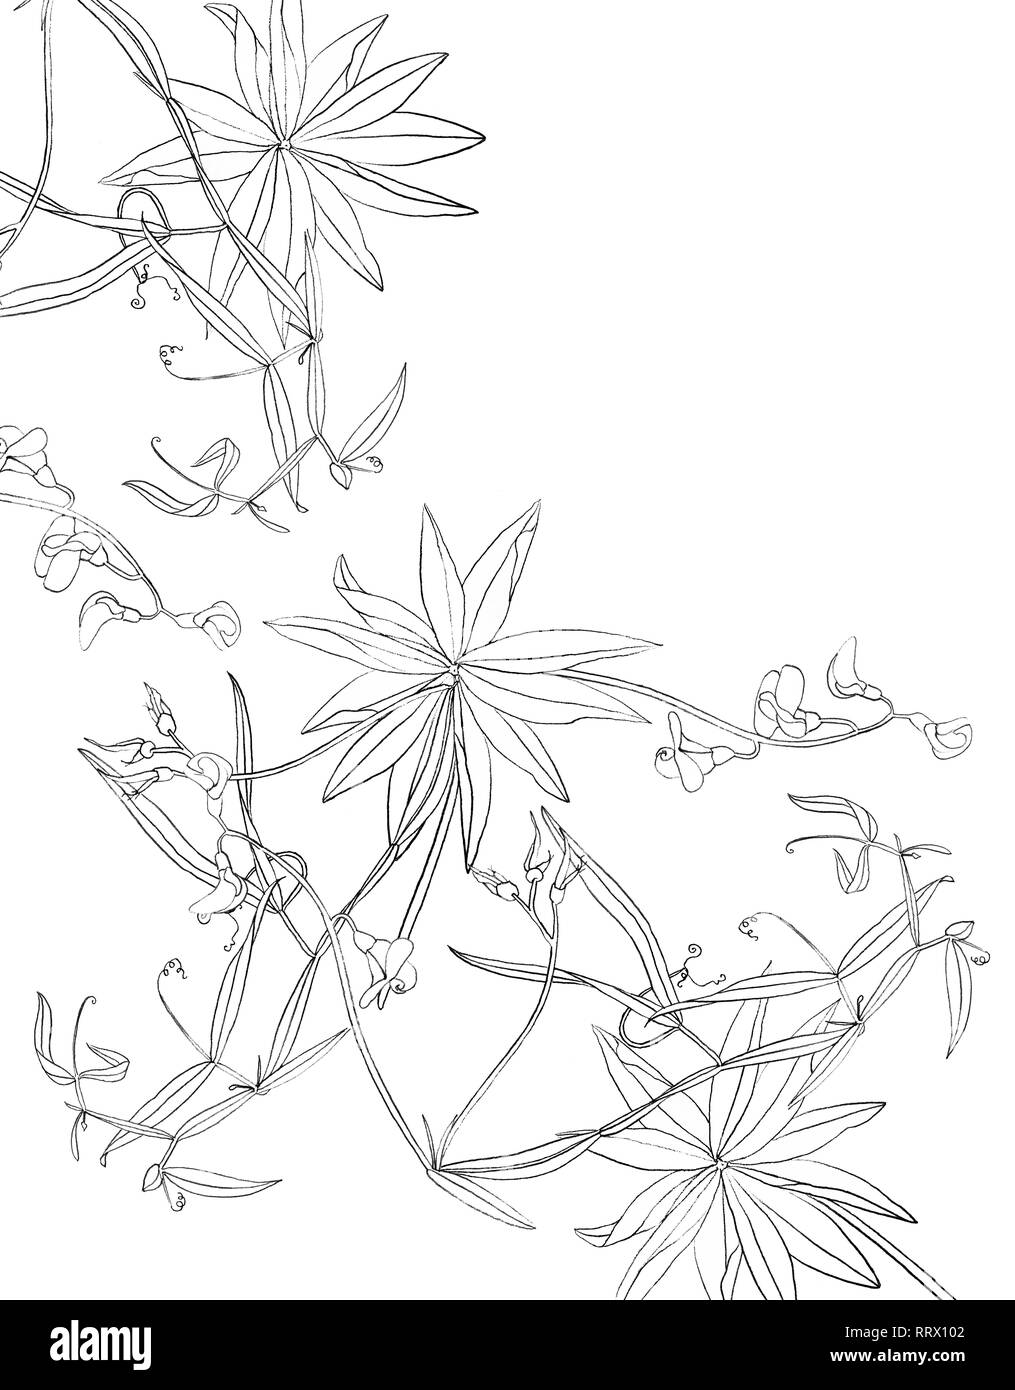 Beautiful engraving flower background isolated on white background. Floral background for design, postcards, banners. - Stock Image